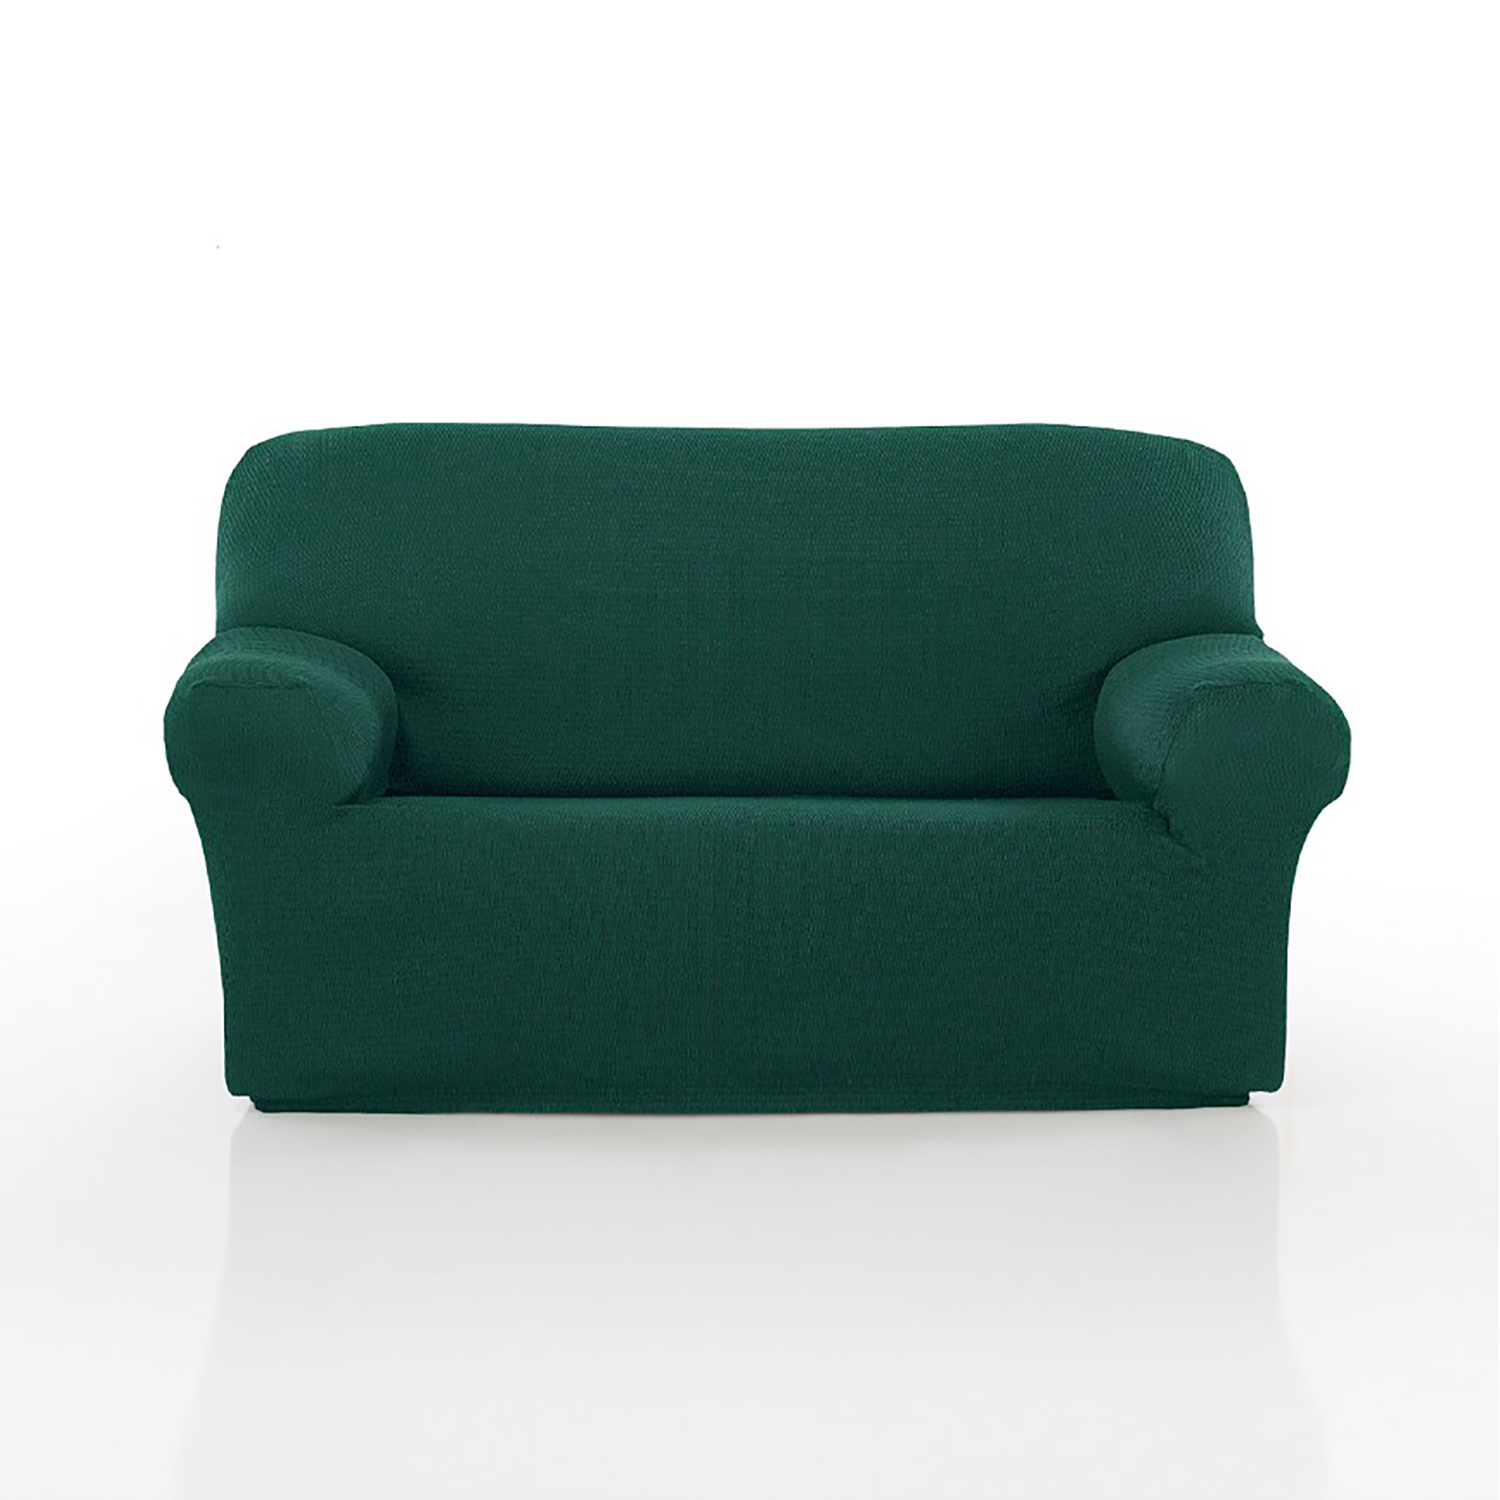 Easystretch 2 Seater Sofa Cover Green 087754